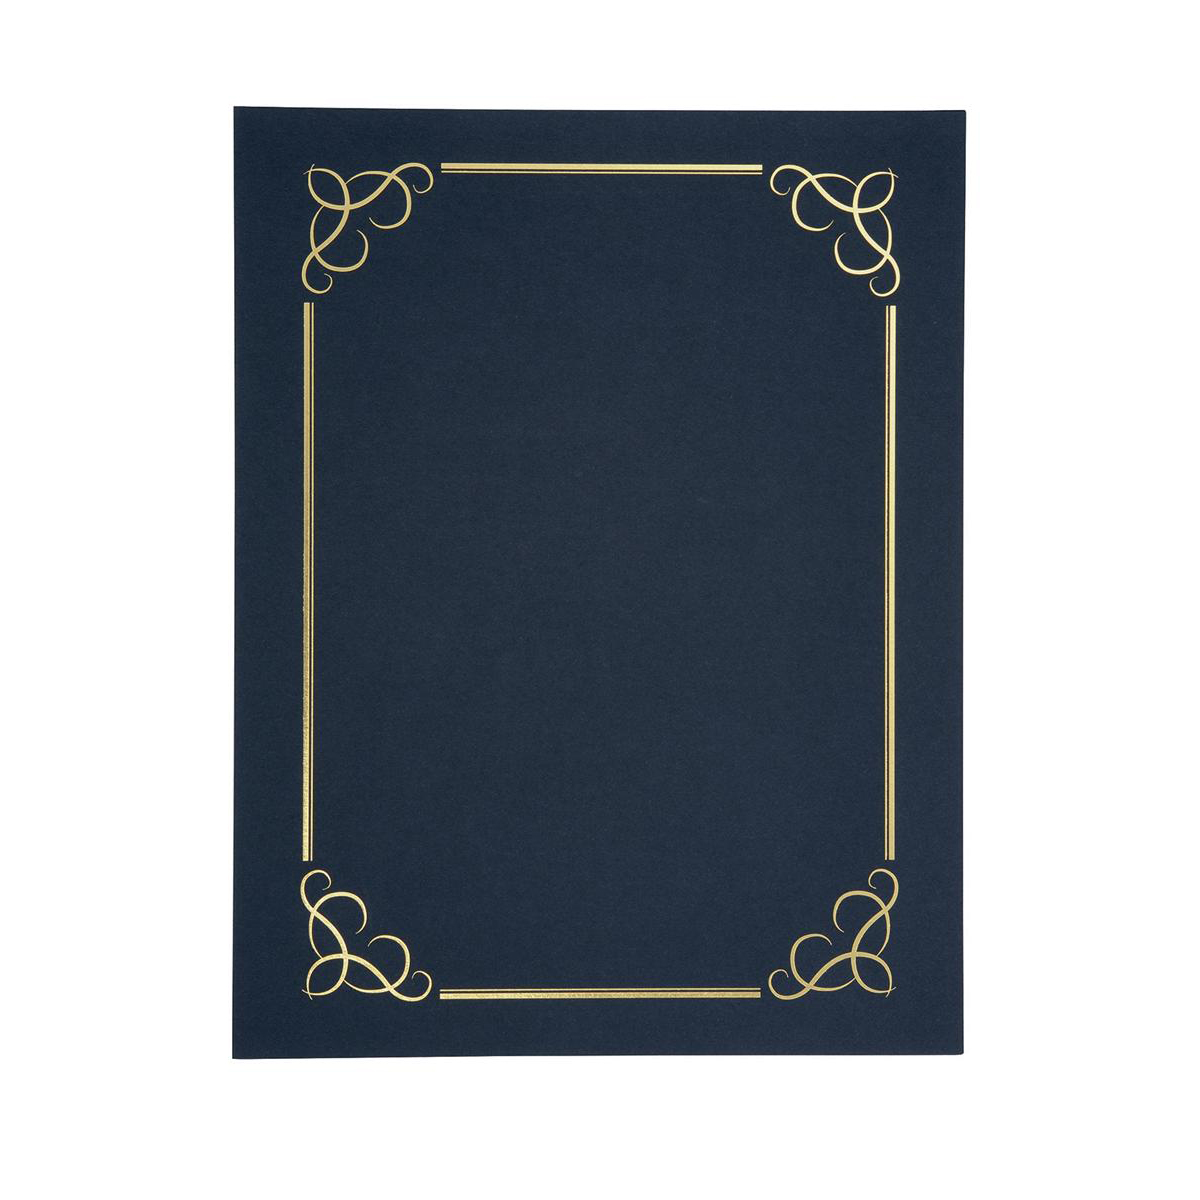 Certificate Covers Linen Finish Heavyweight Card 240g A4 Blue [Pack 5]